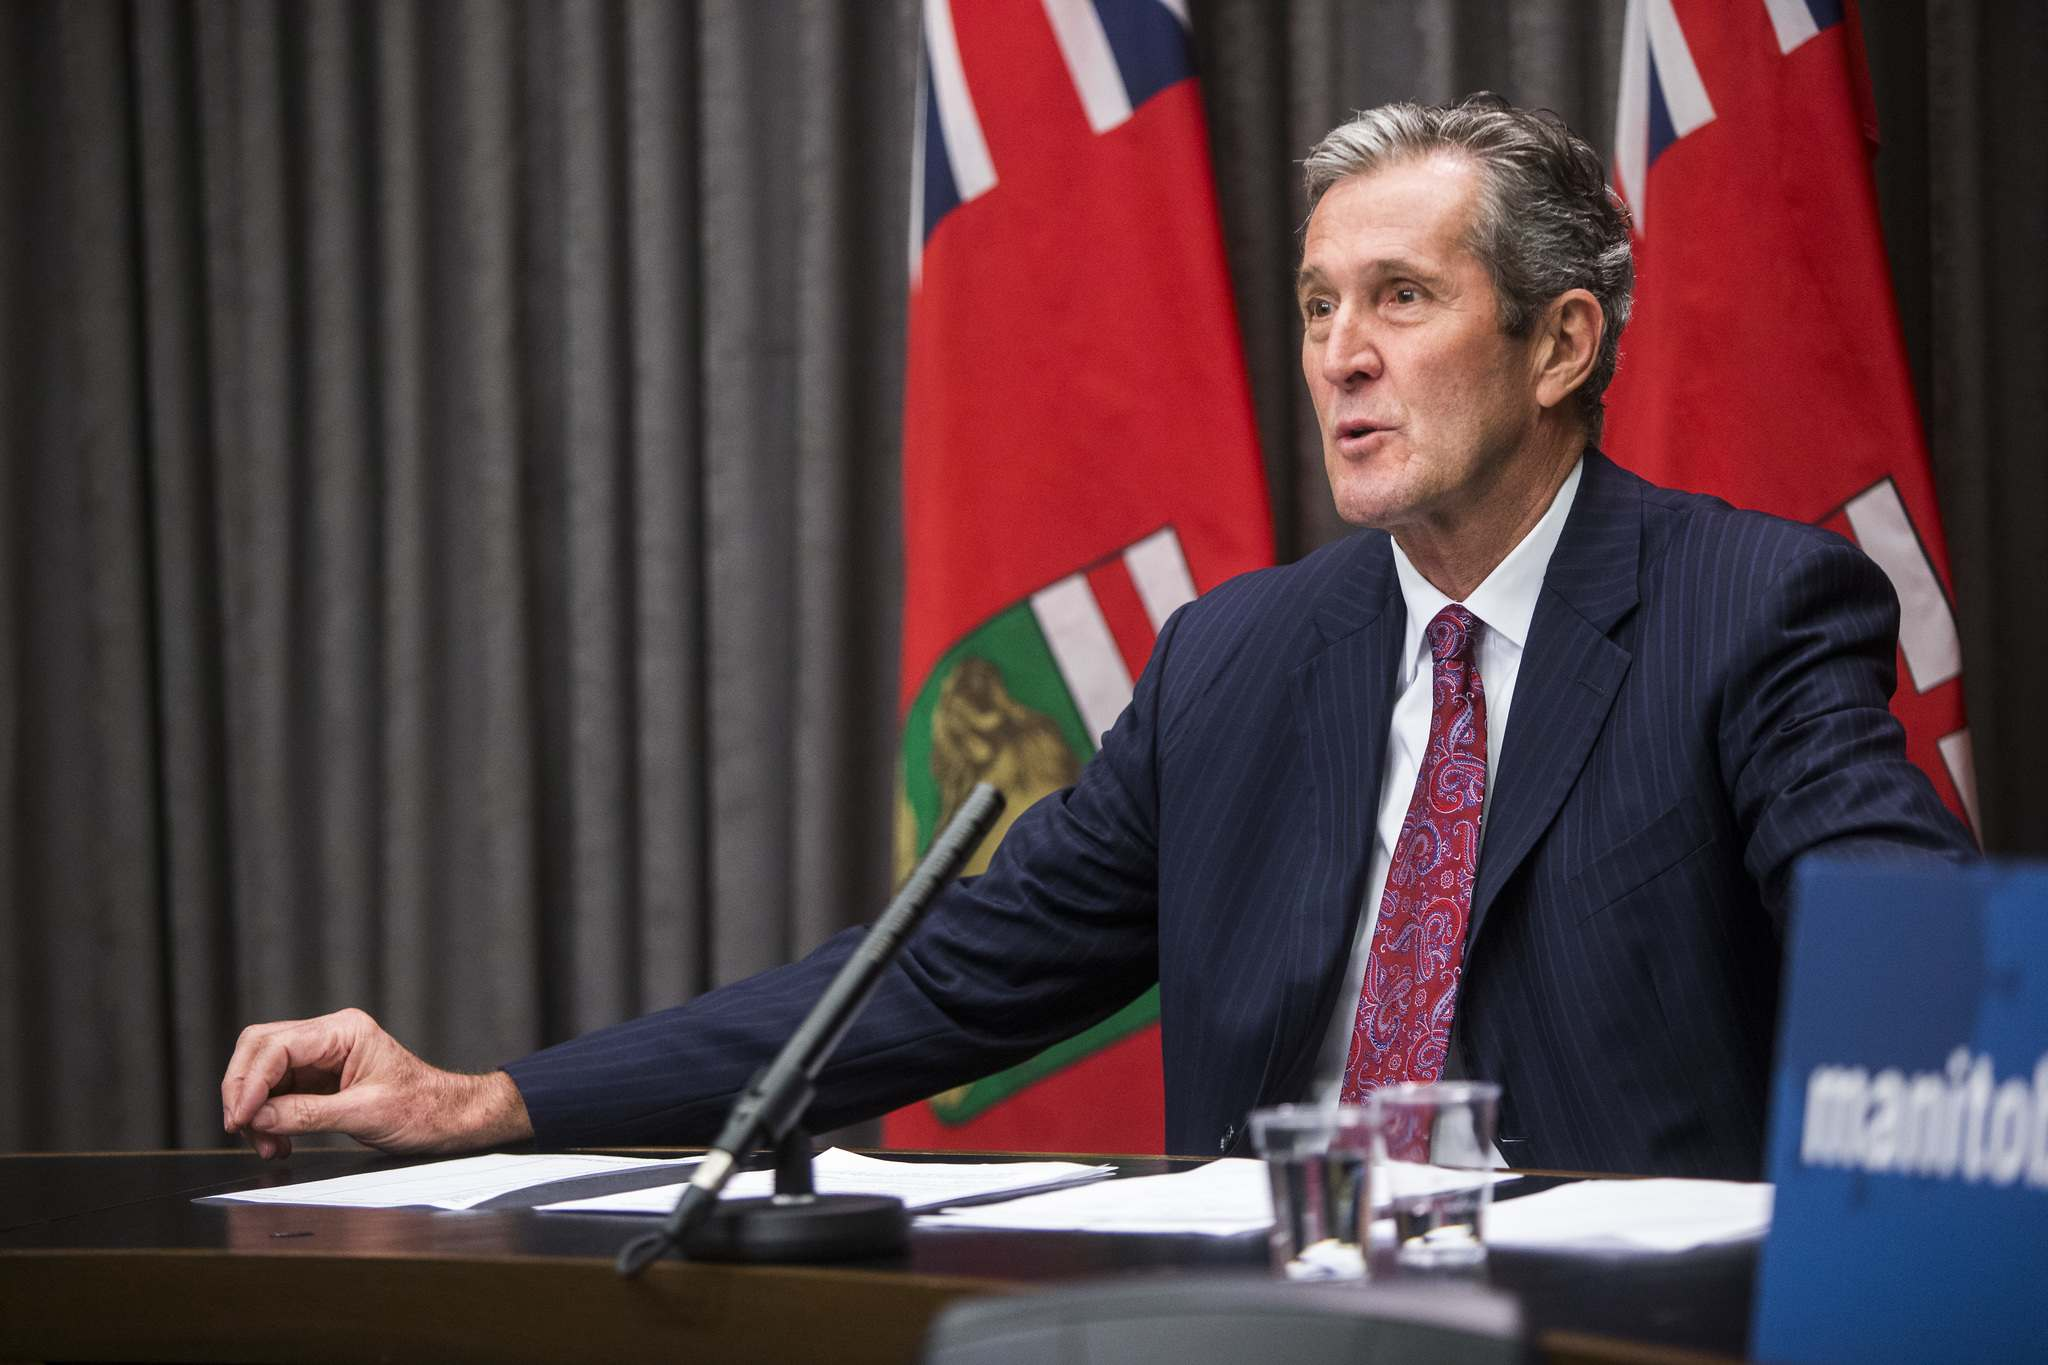 MIKAELA MACKENZIE / FREE PRESS FILES</p><p>Premier Brian Pallister announced the spending of an additional $500 million that would expand on already-announced infrastructure investments of $3 billion over the next two years.</p></p>